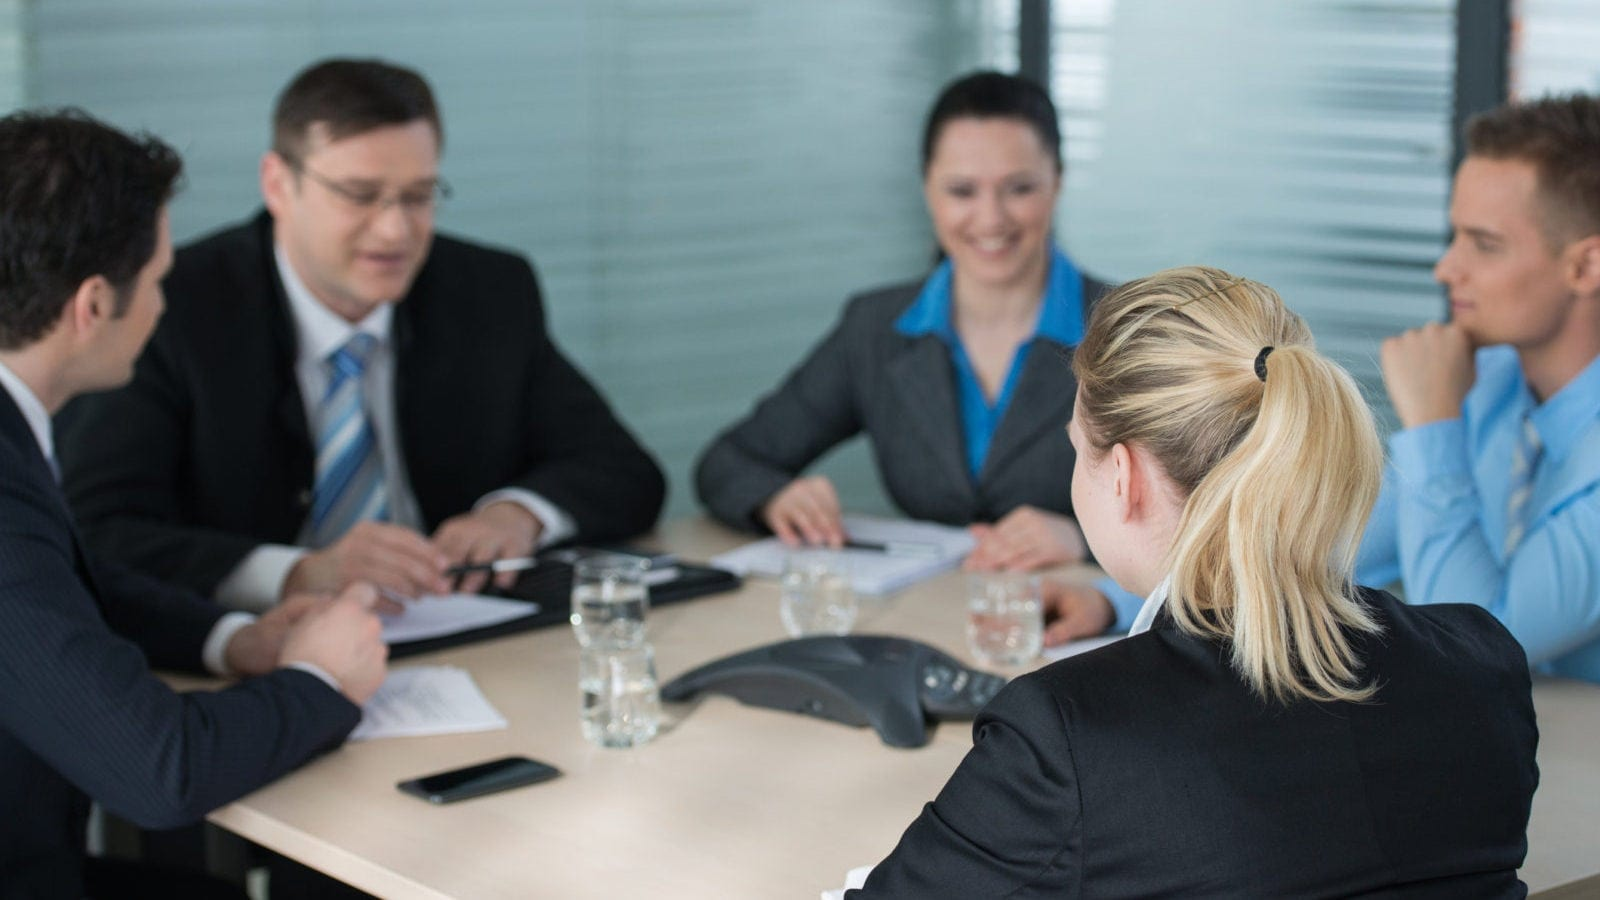 Lawyers Meeting Privately Inside A Boardroom Stock Photo